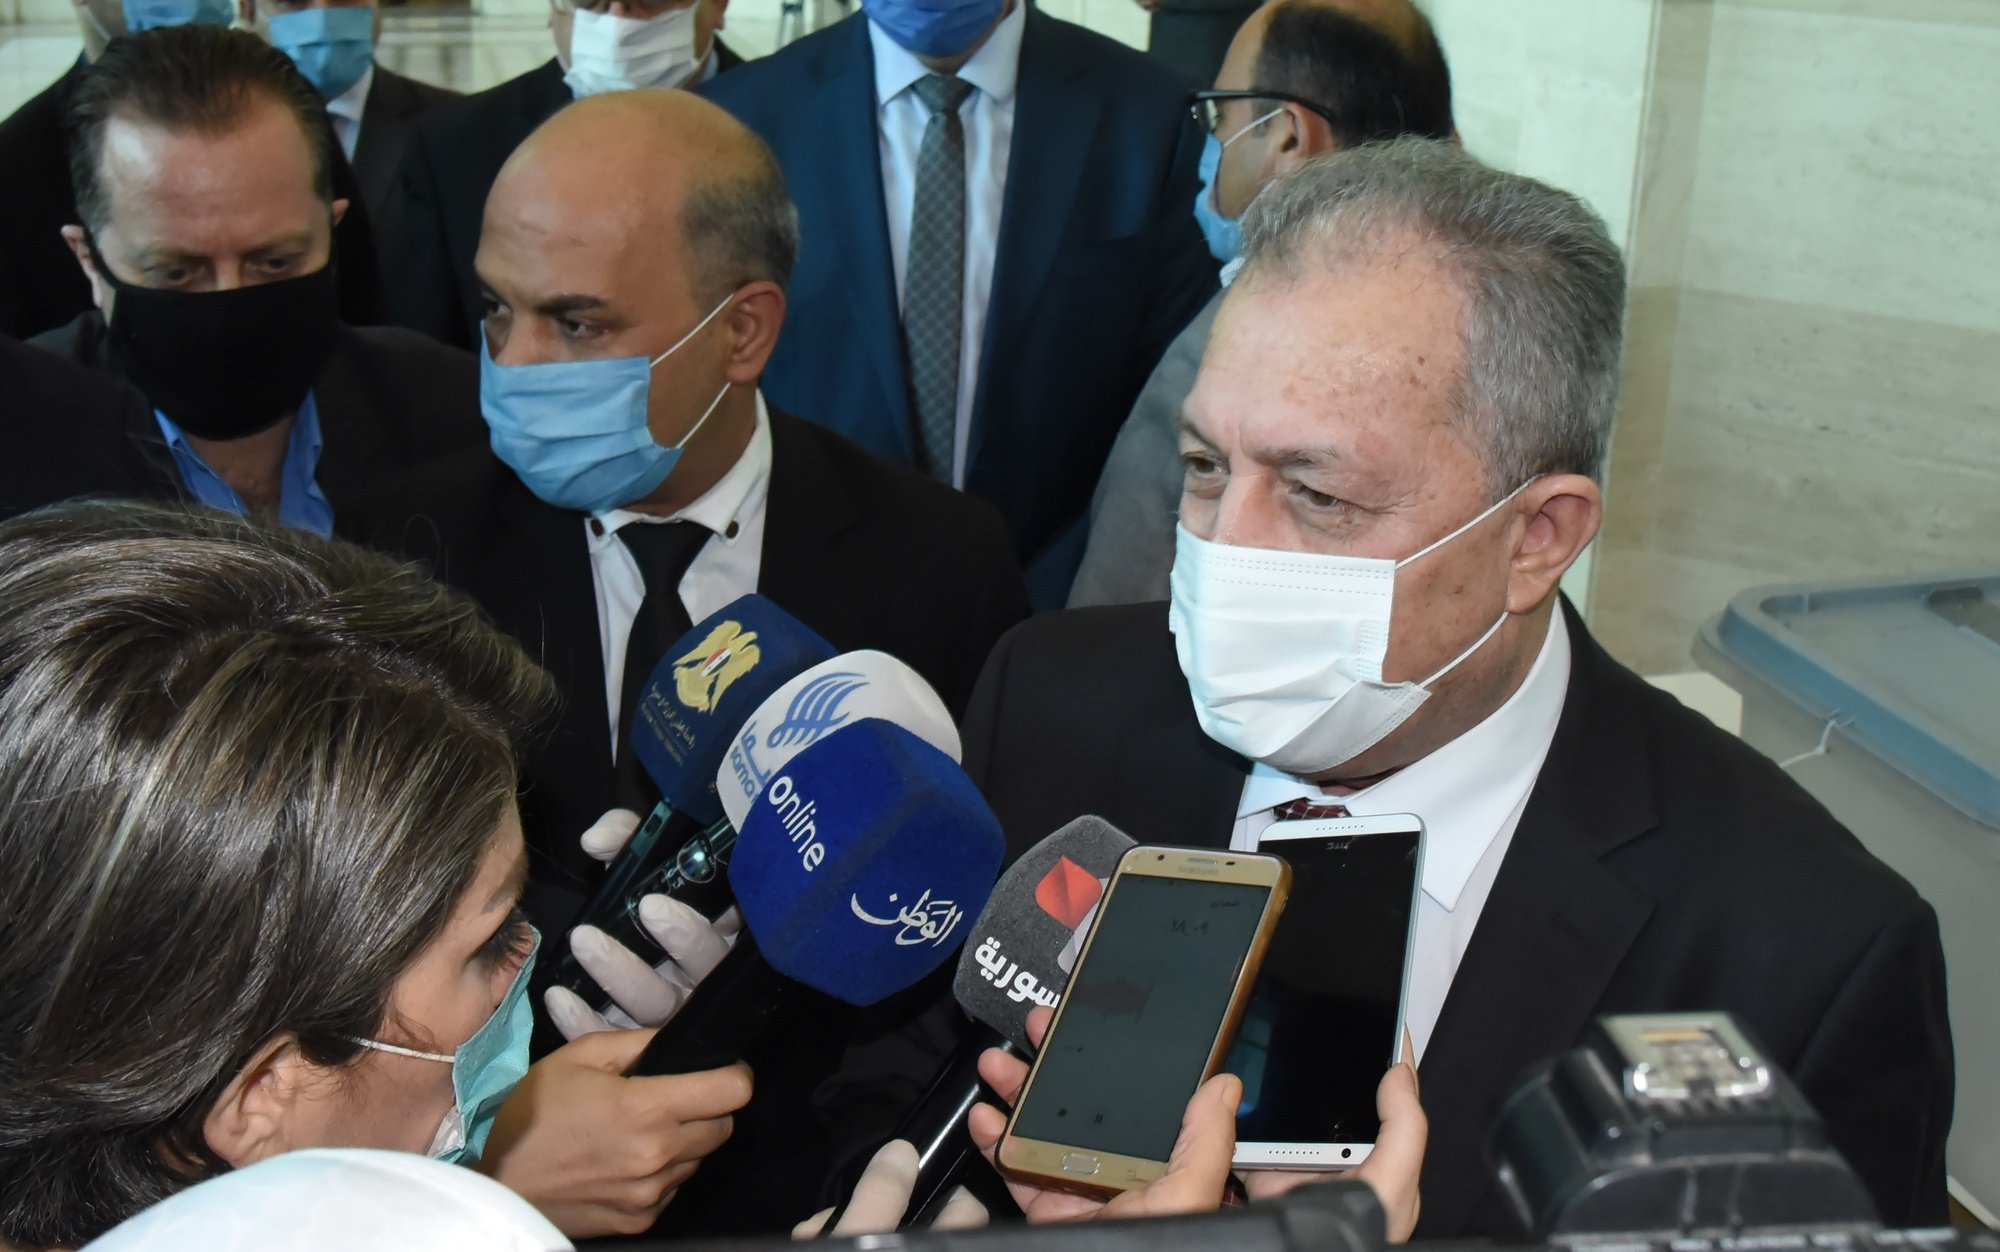 epa08554661 Syrian Prime Minister Hussein Arnous speaks to reporter after casting his vote in the People's Assembly (parliament) elections in Damascus, Syria, 19 July 2020. According to reports, 250 Syrian MPs will be elected by direct vote for a four-year term. A total of 1656 candidates are participating in this election process, including 200 women.  EPA/YOUSSEF BADAWI